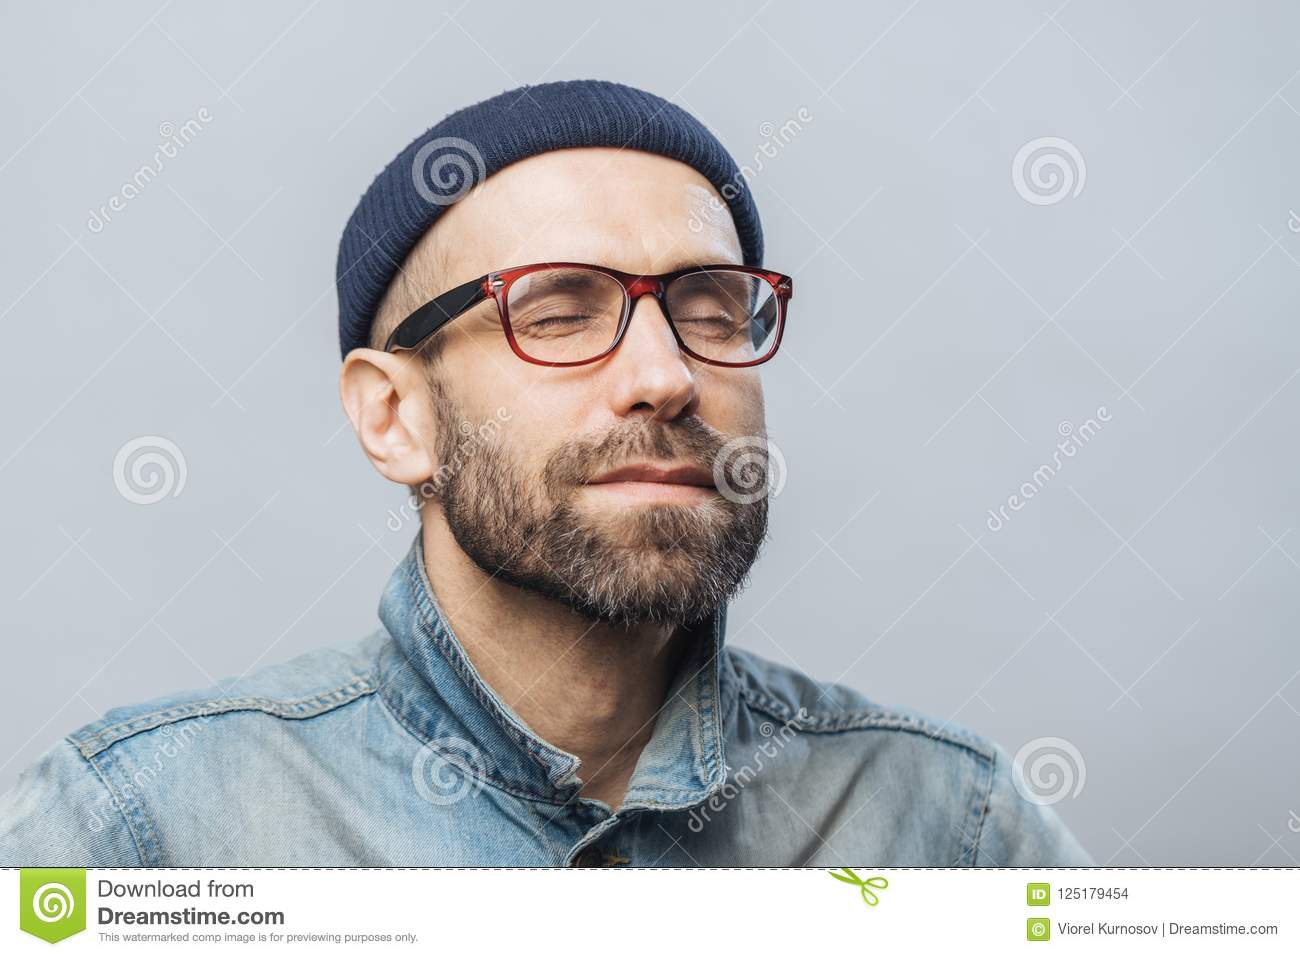 Portrait of relaxed unshaven male with closed eyes wears glasses, keeps eyes closed, enjoys calm atmosphere, isolated over white b